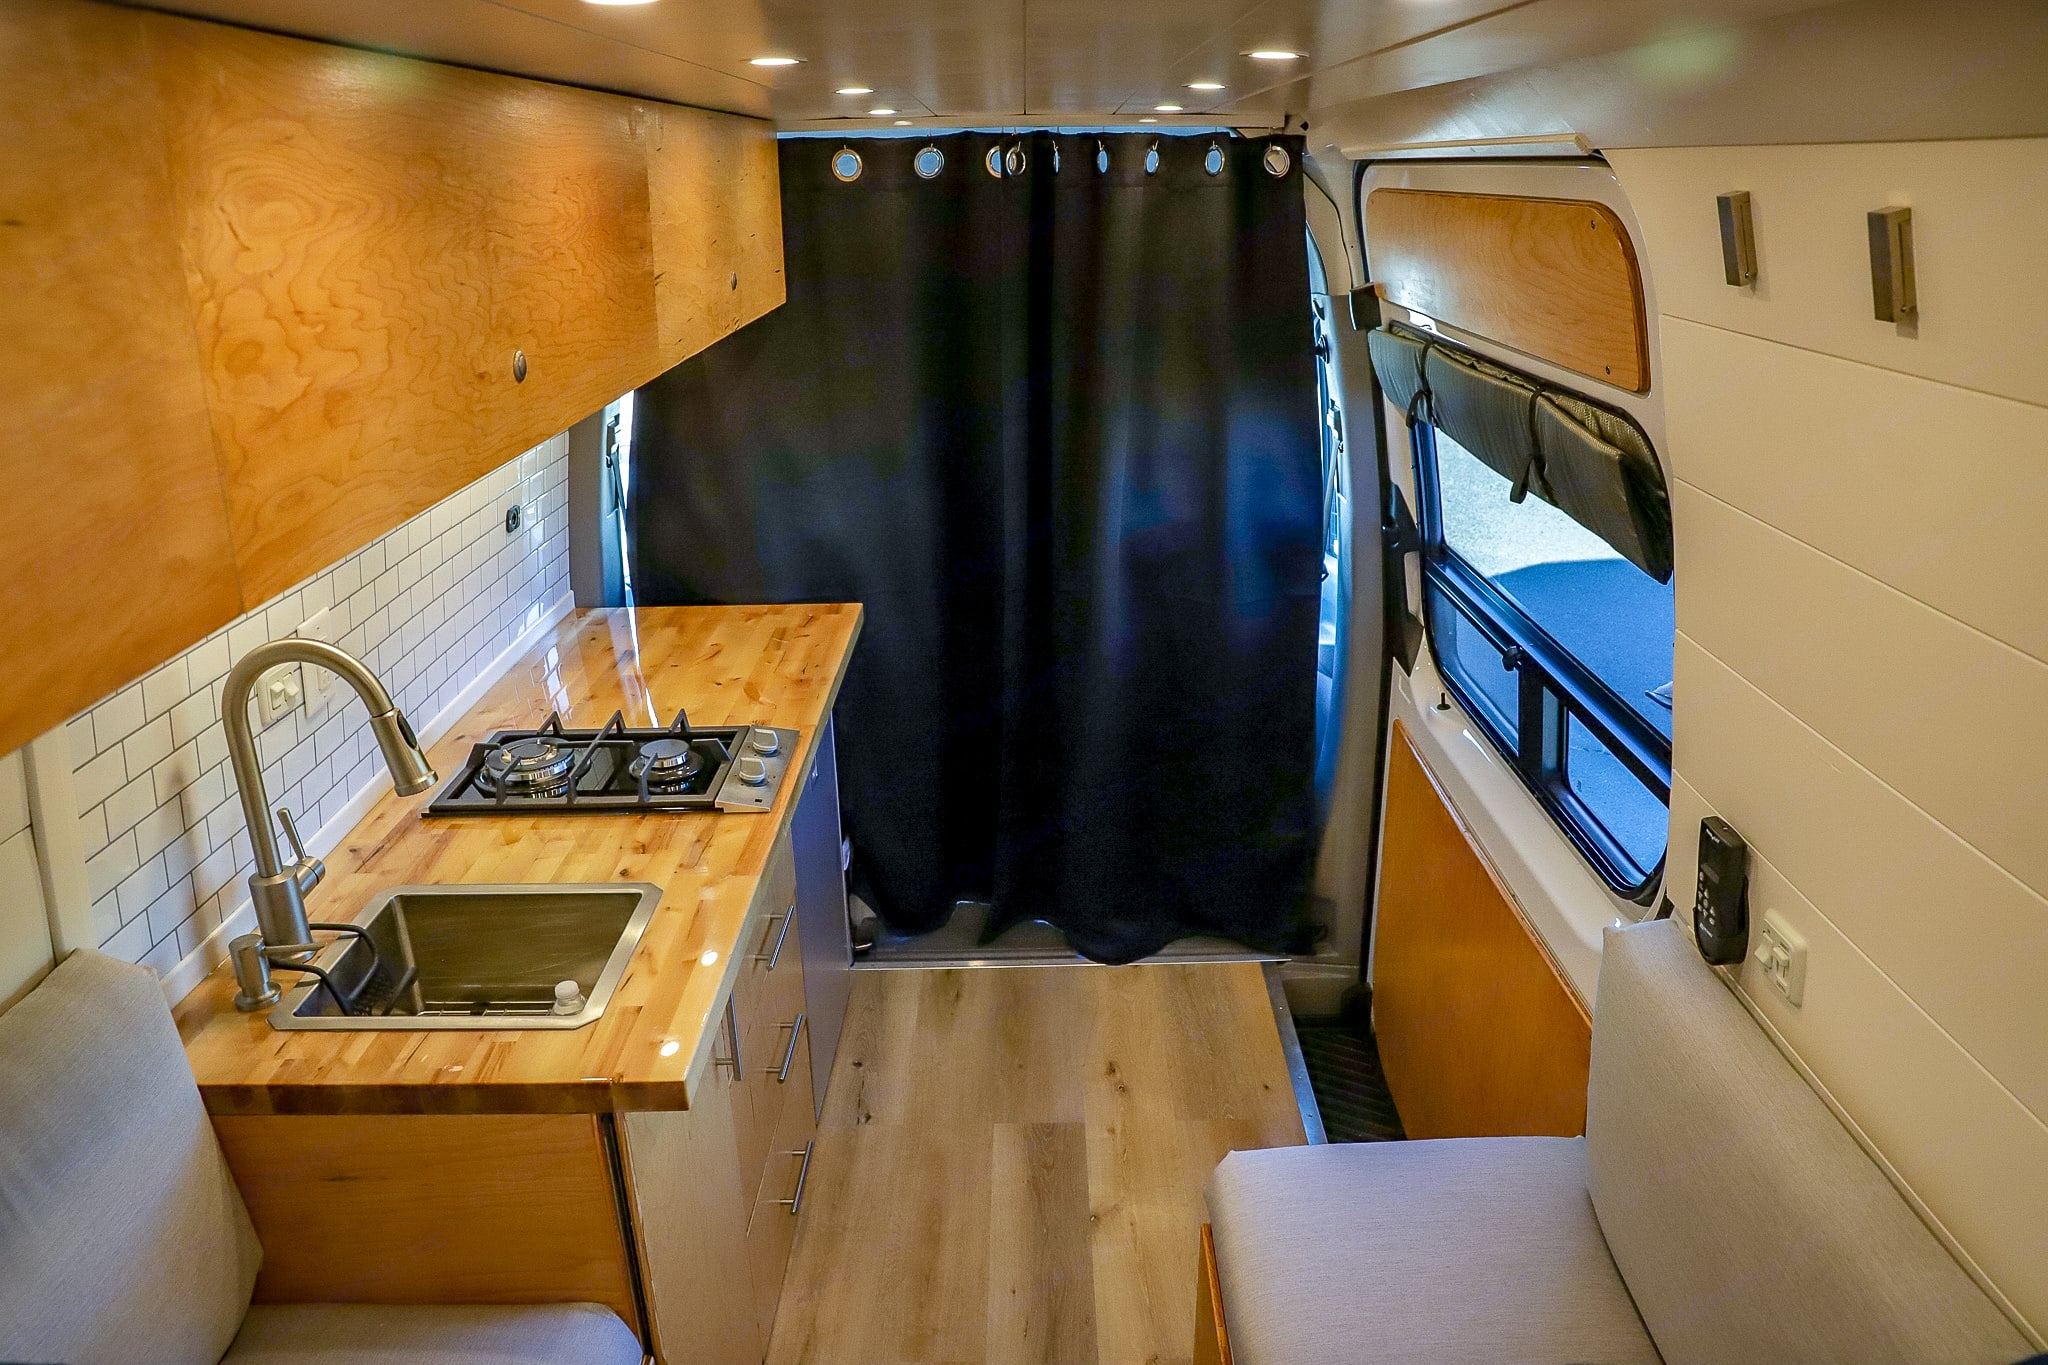 Blackout curtains for privacy. Mercedes Benz Sprinter 2017